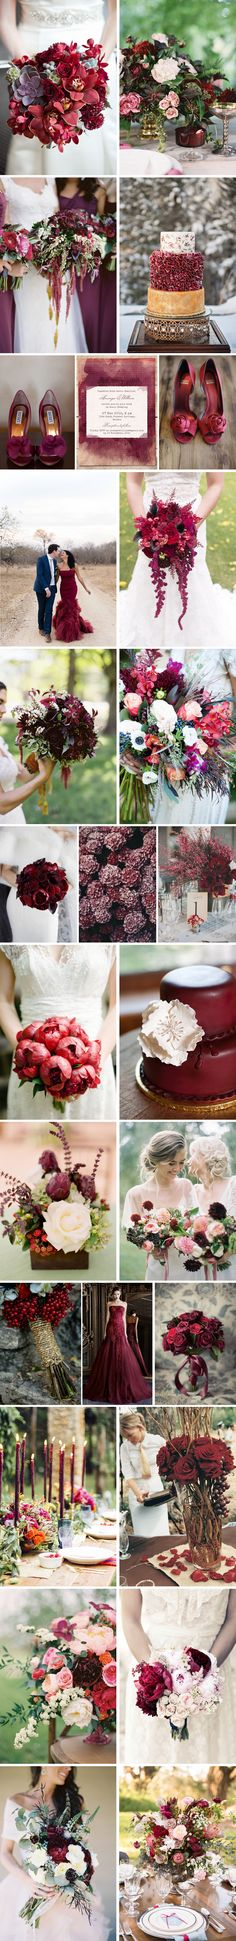 Pantone color of 2015 marsala wedding inspiration. | facebook.com/mysweetengagement